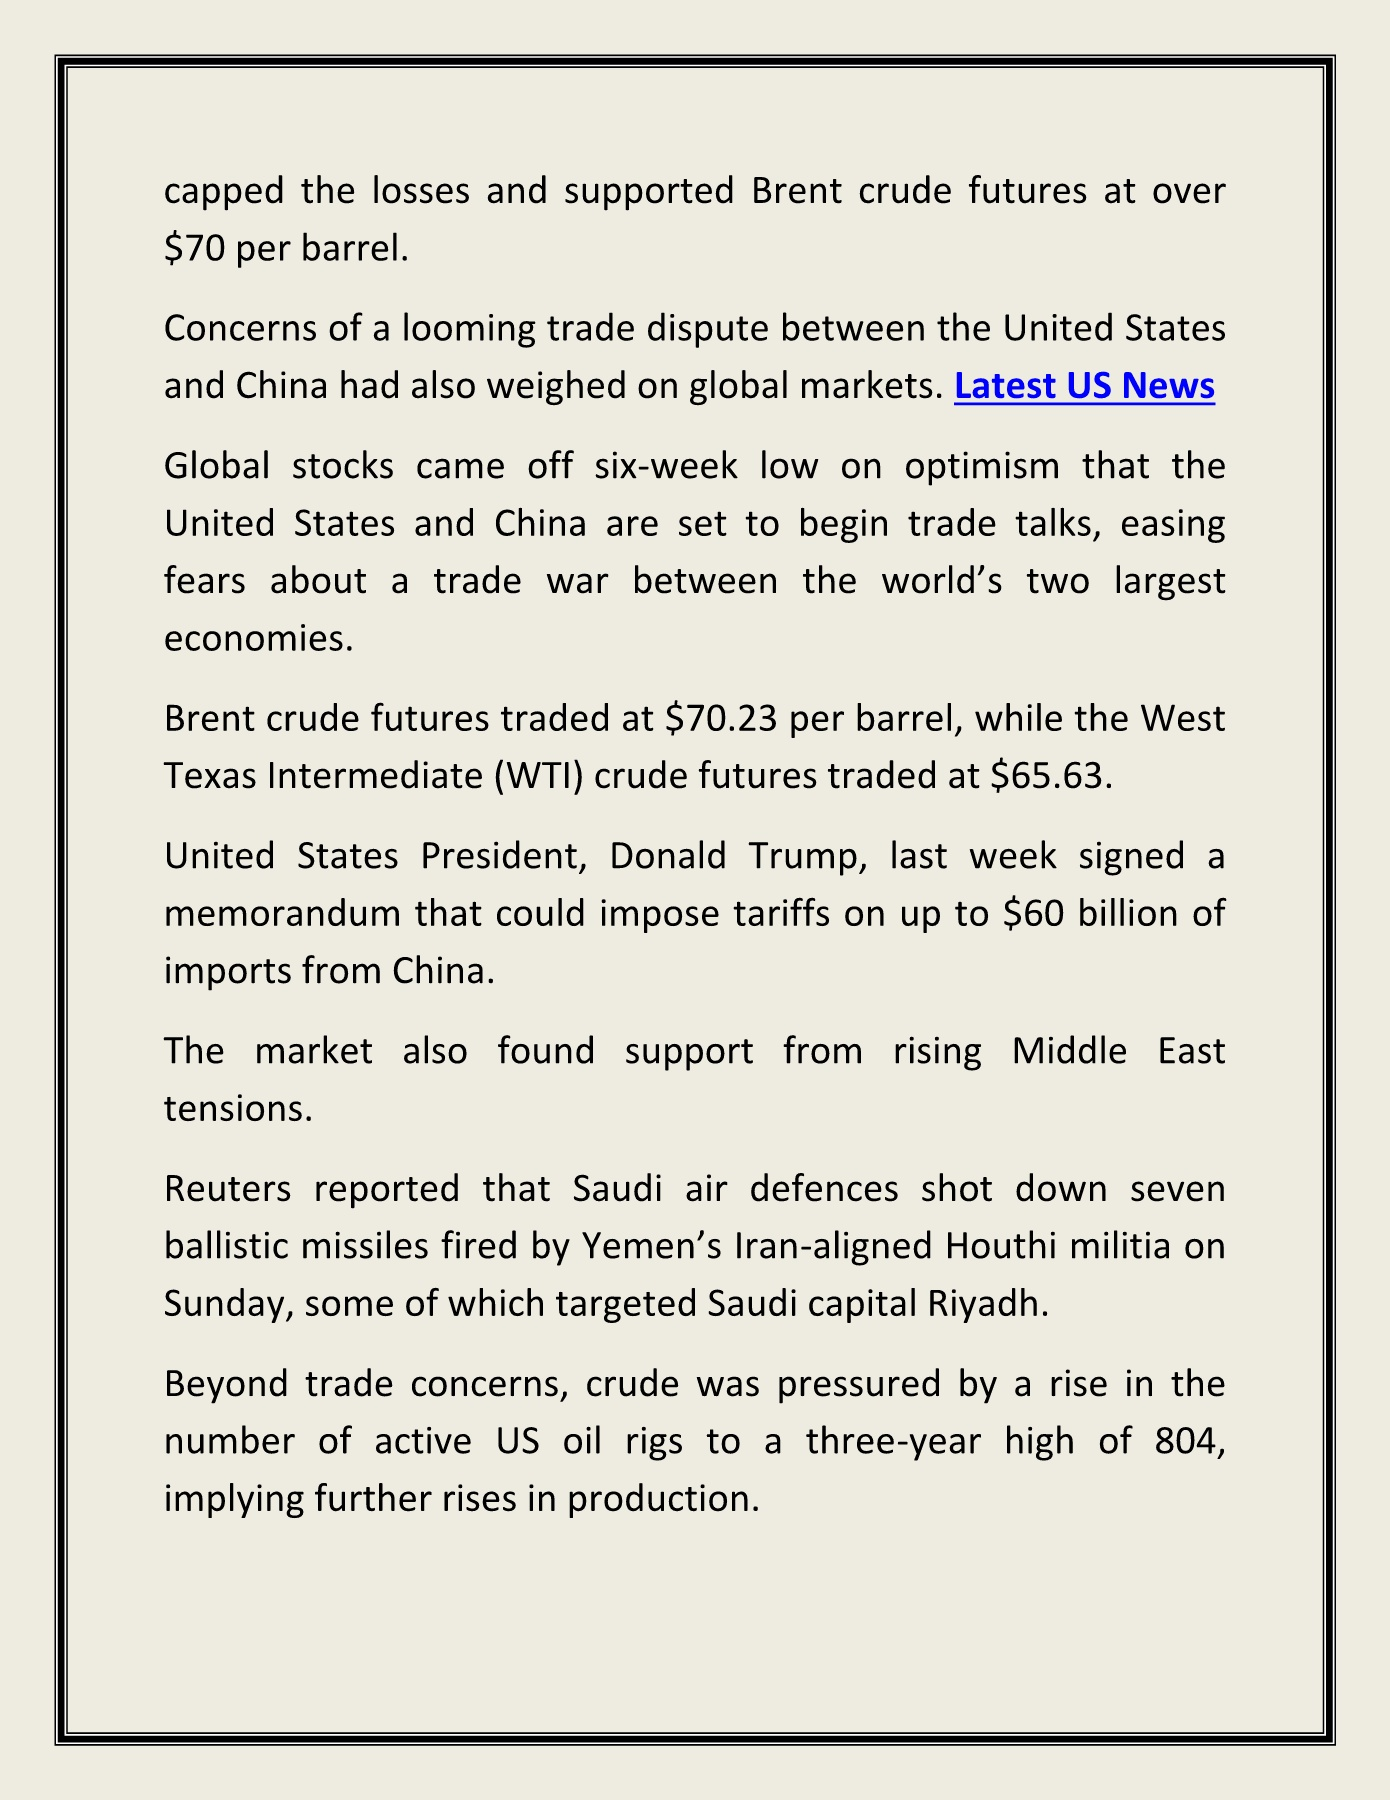 MIDDLE EAST TENSIONS SUPPORT CRUDE OIL PRICE AT $70 PER